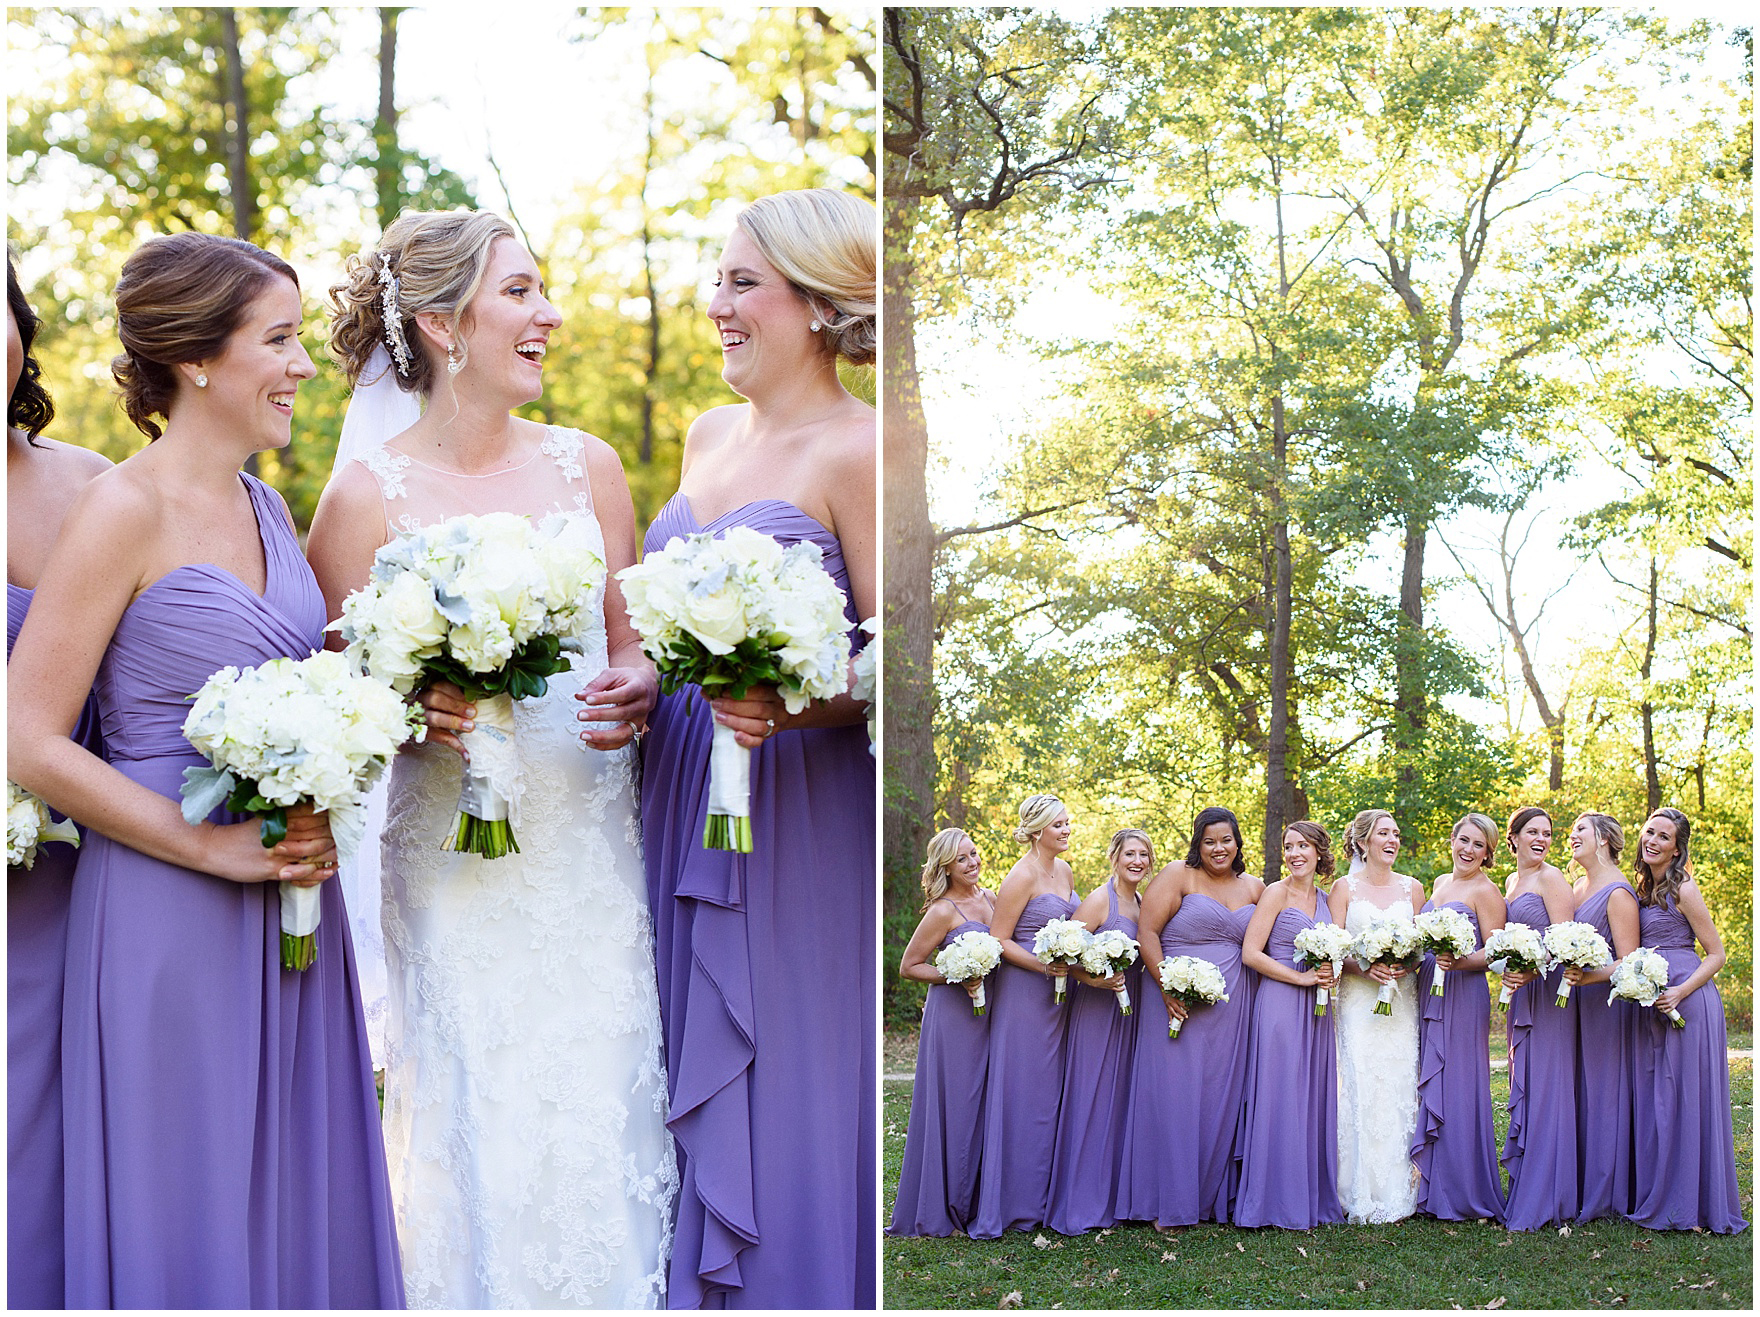 Bridesmaids laugh while posing for portraits during a Glen Club Glenview Illinois wedding.